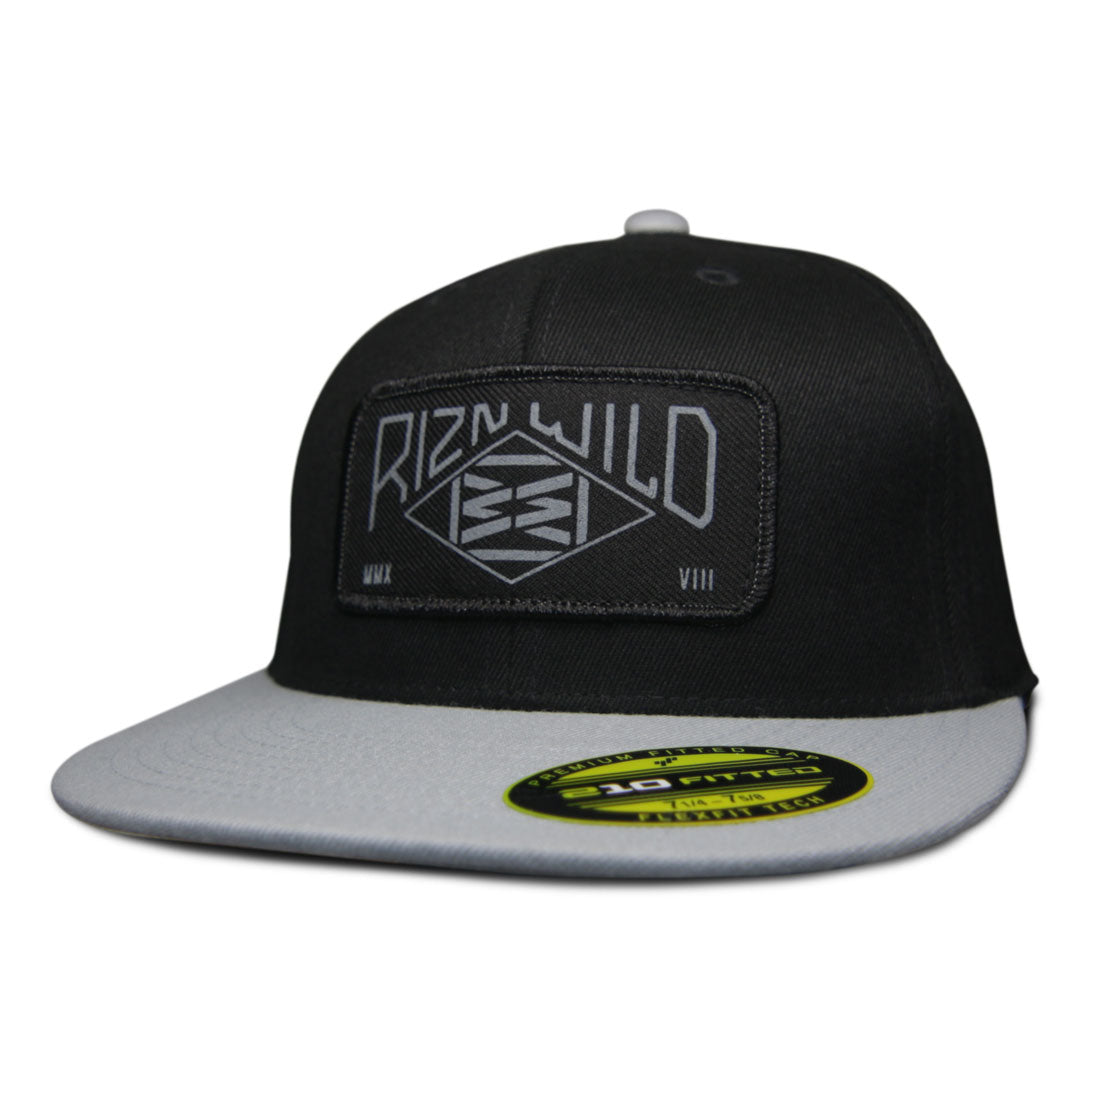 Range 210 Flat Bill Fitted Hat in Black/Silver